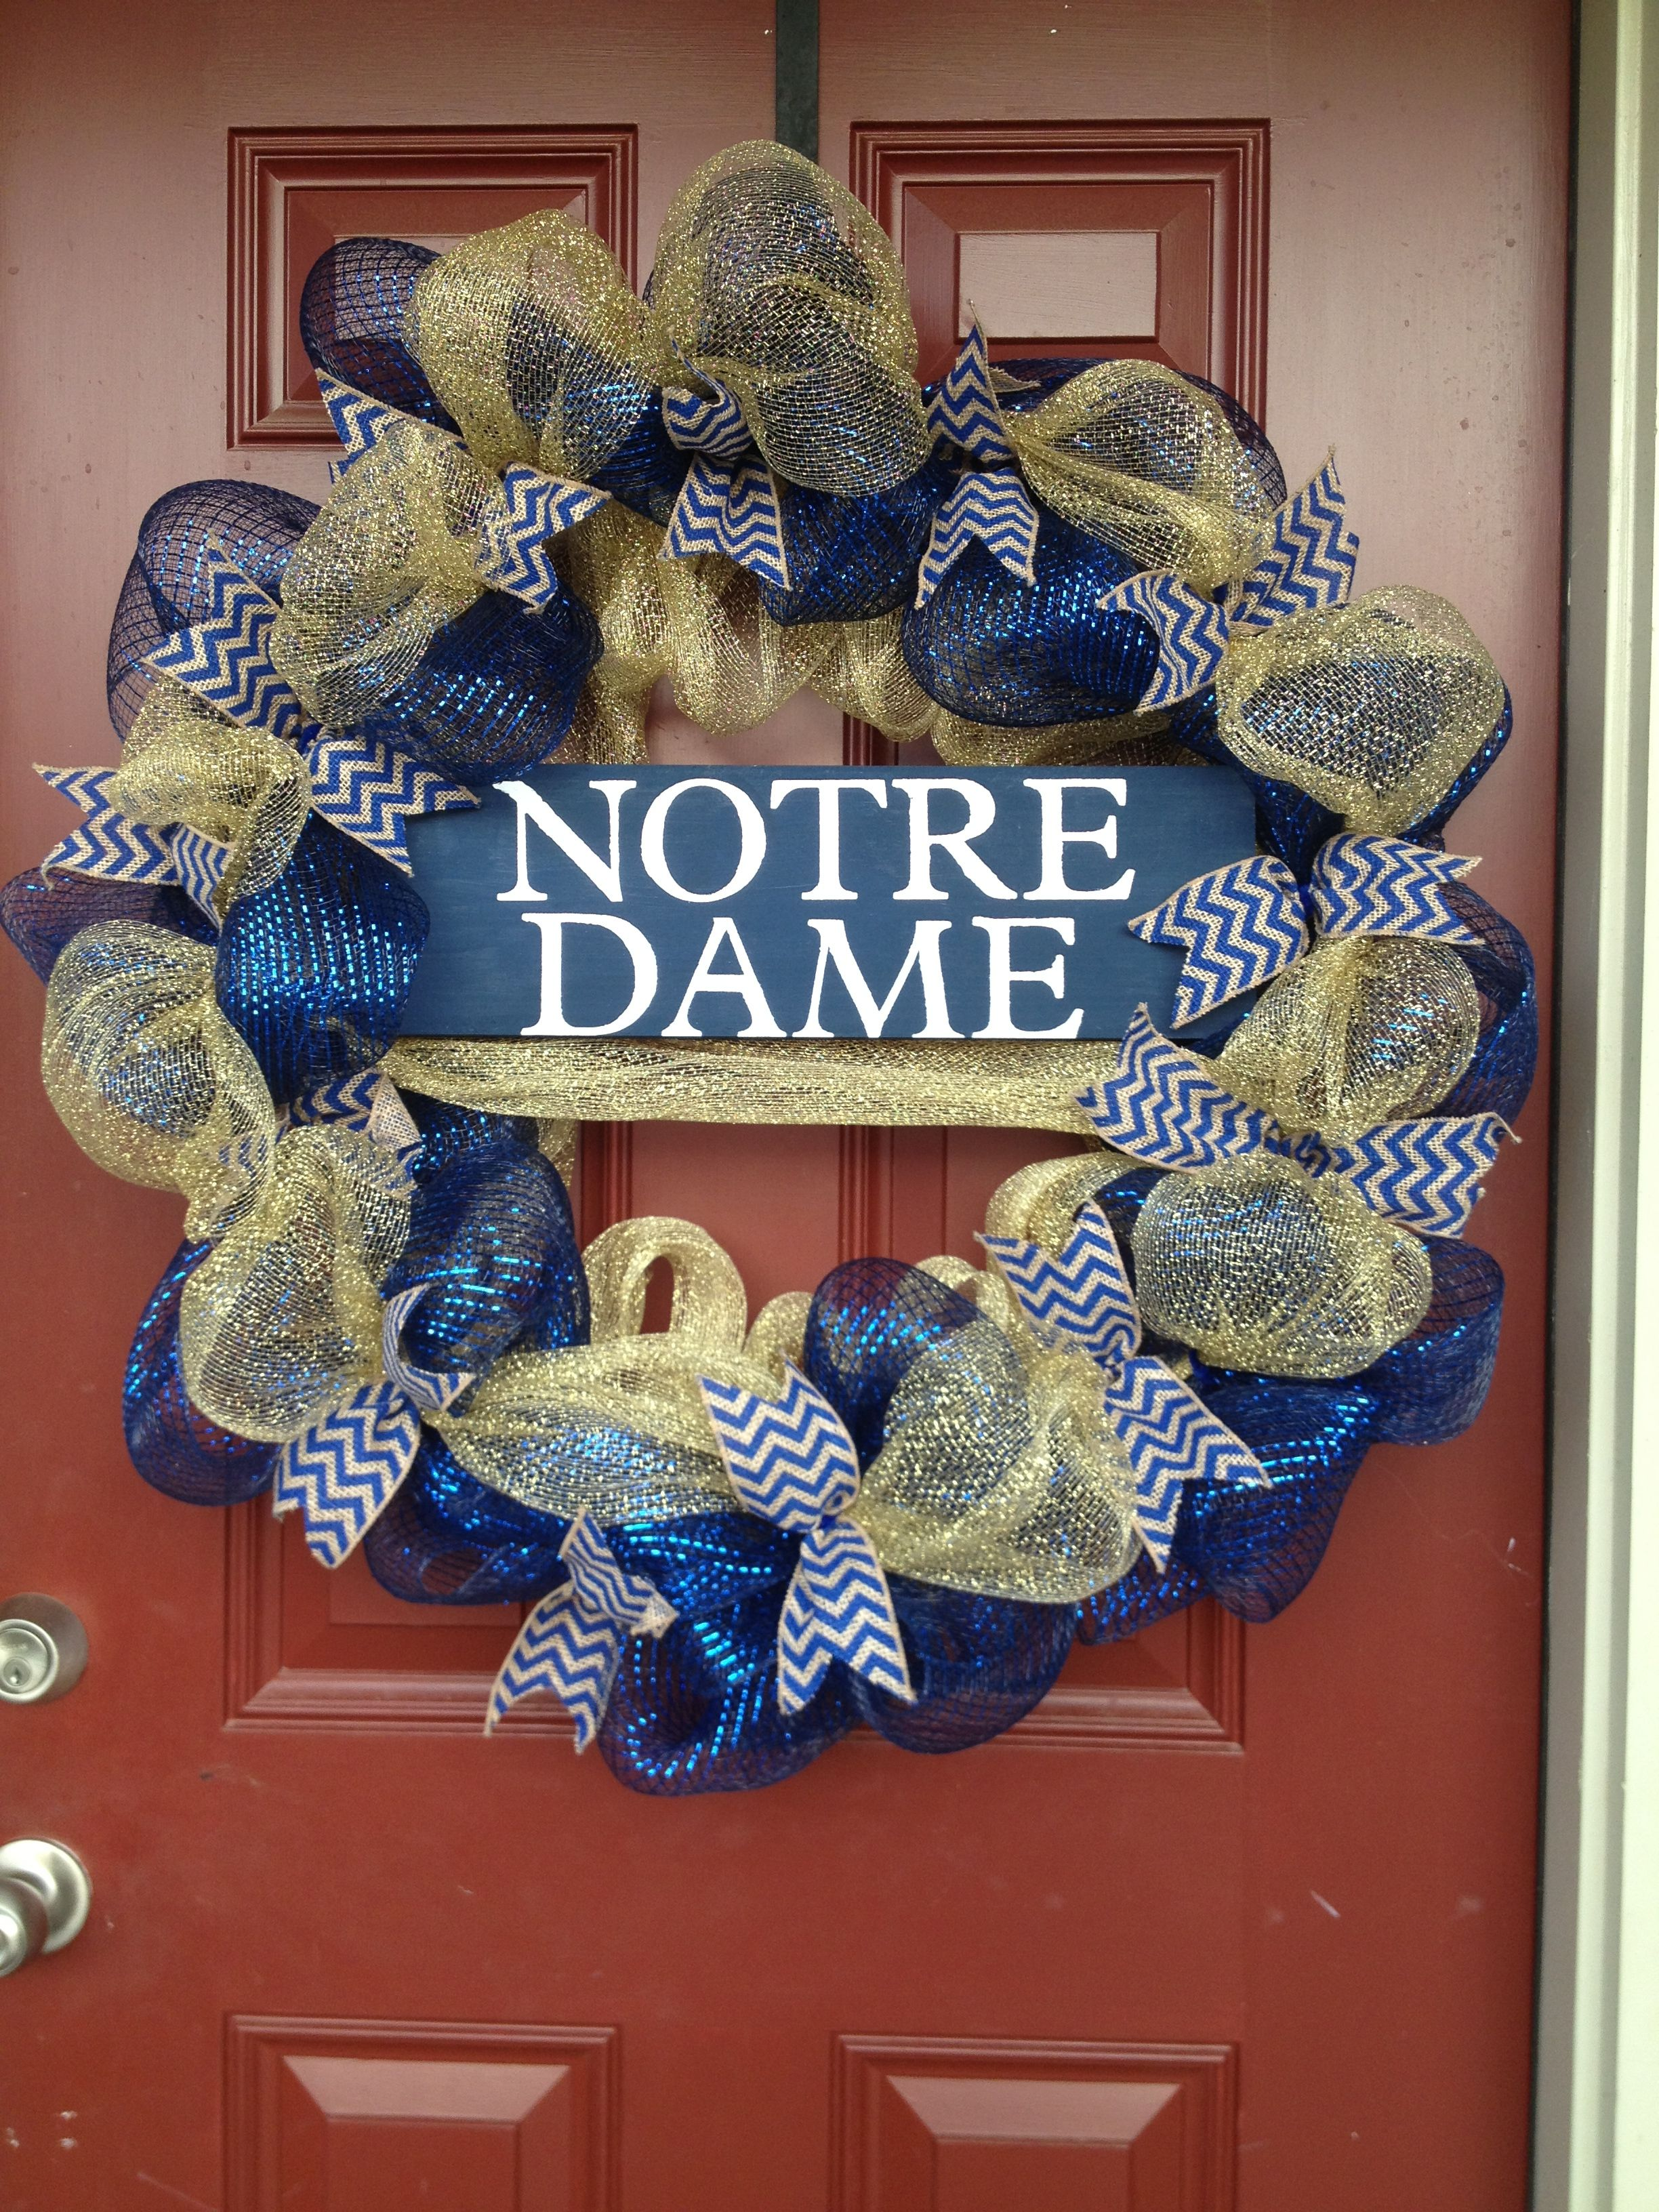 Notre Dame wreath I made for my husband. Deco mesh